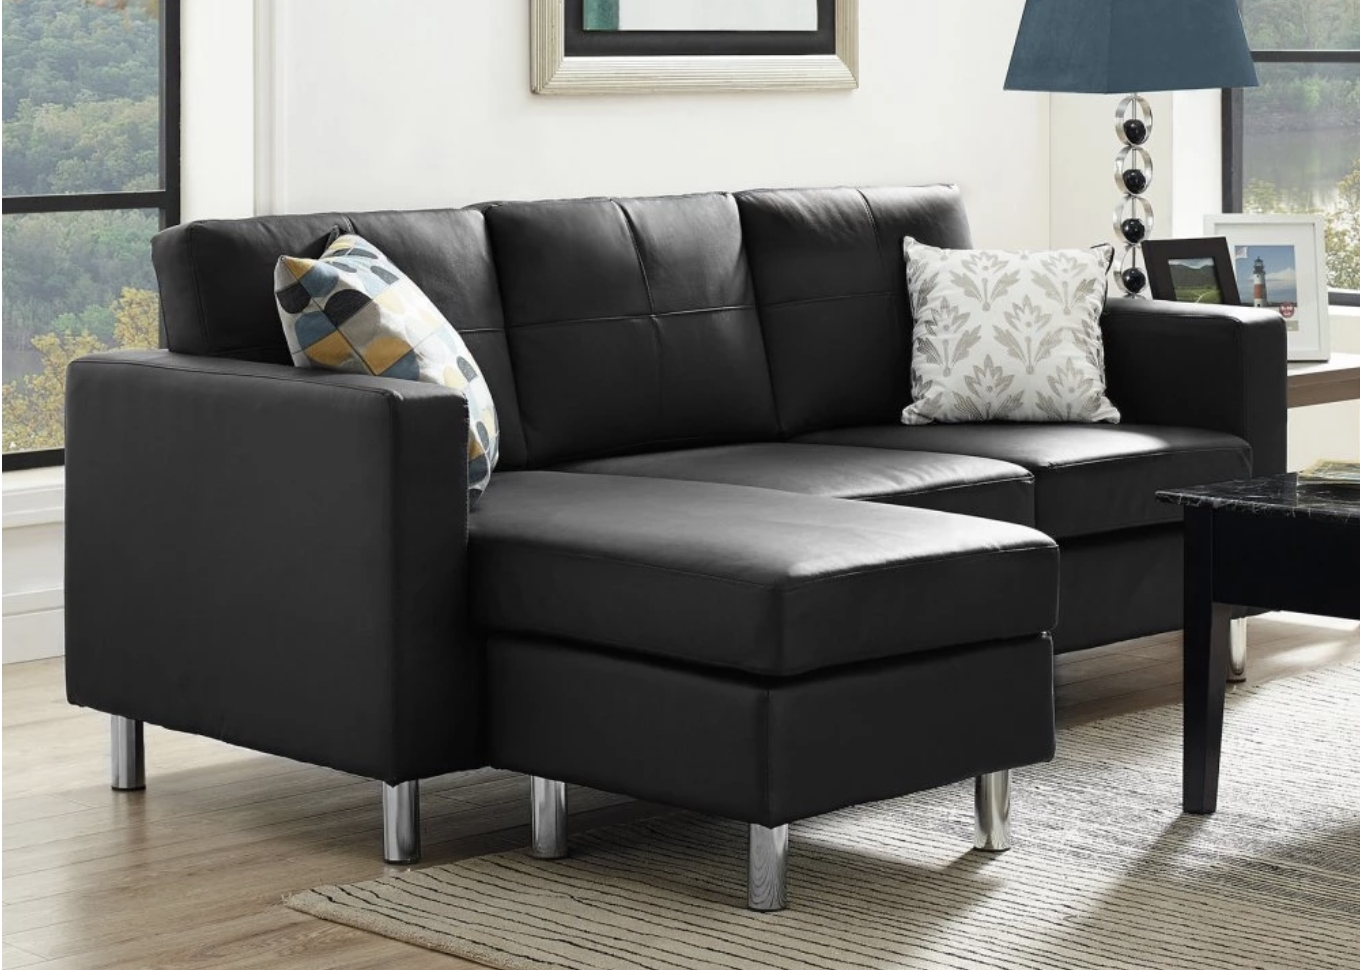 75 Modern Sectional Sofas For Small Spaces (2018) regarding Sectional Sofas for Small Areas